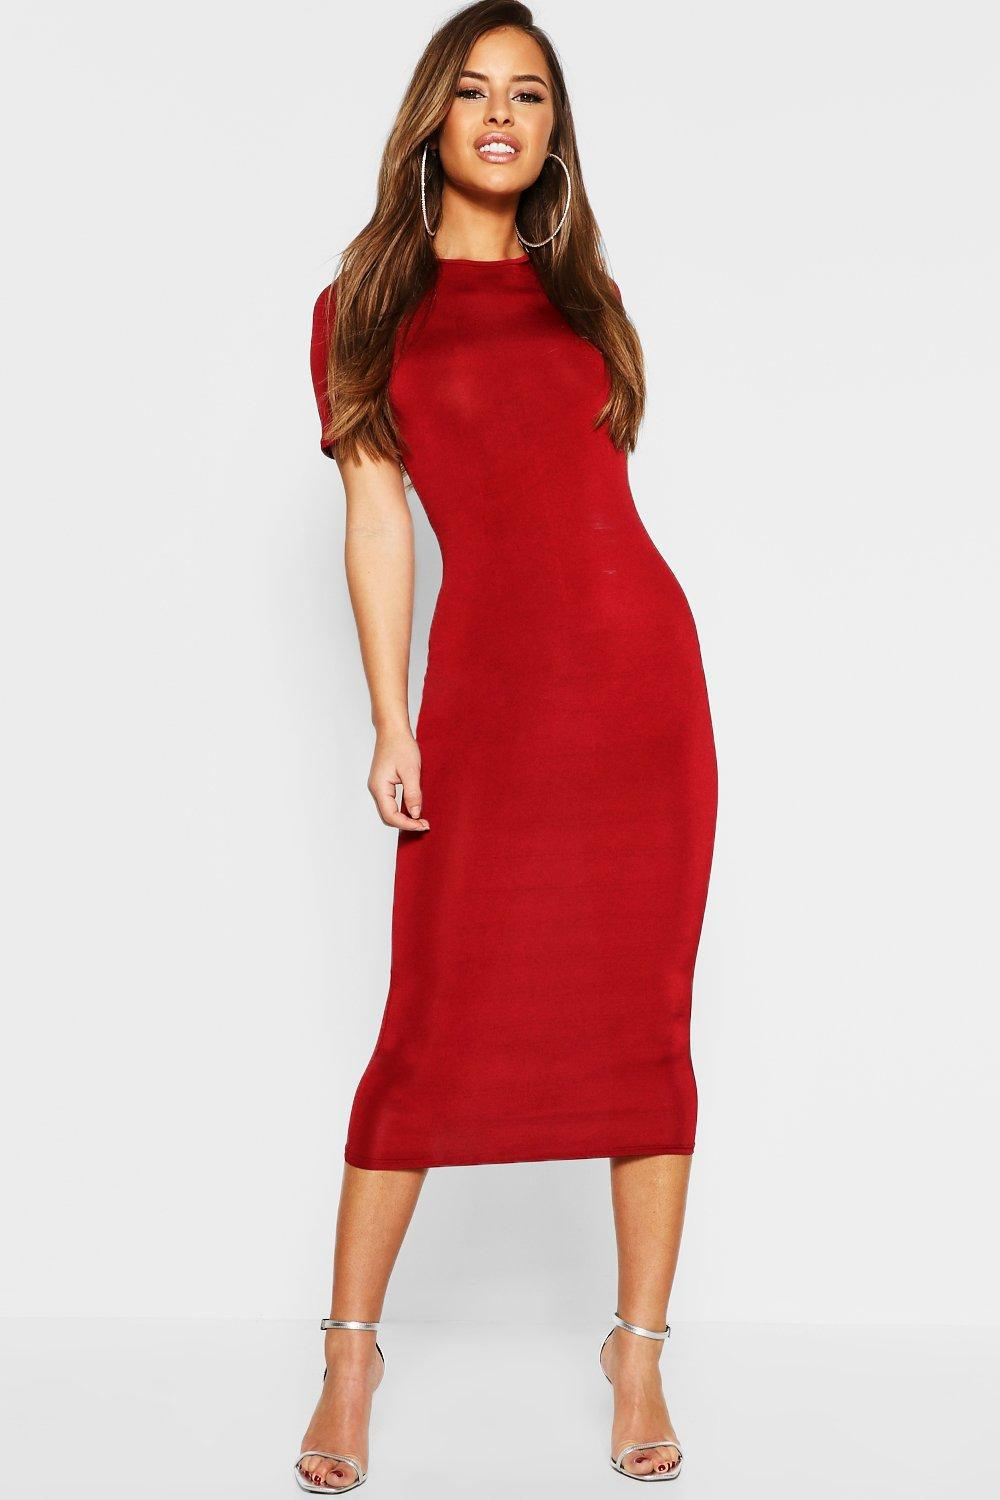 6422b3162a4a Boohoo Petite Slinky Disco Cap Sleeve Bodycon Dress in Red - Lyst